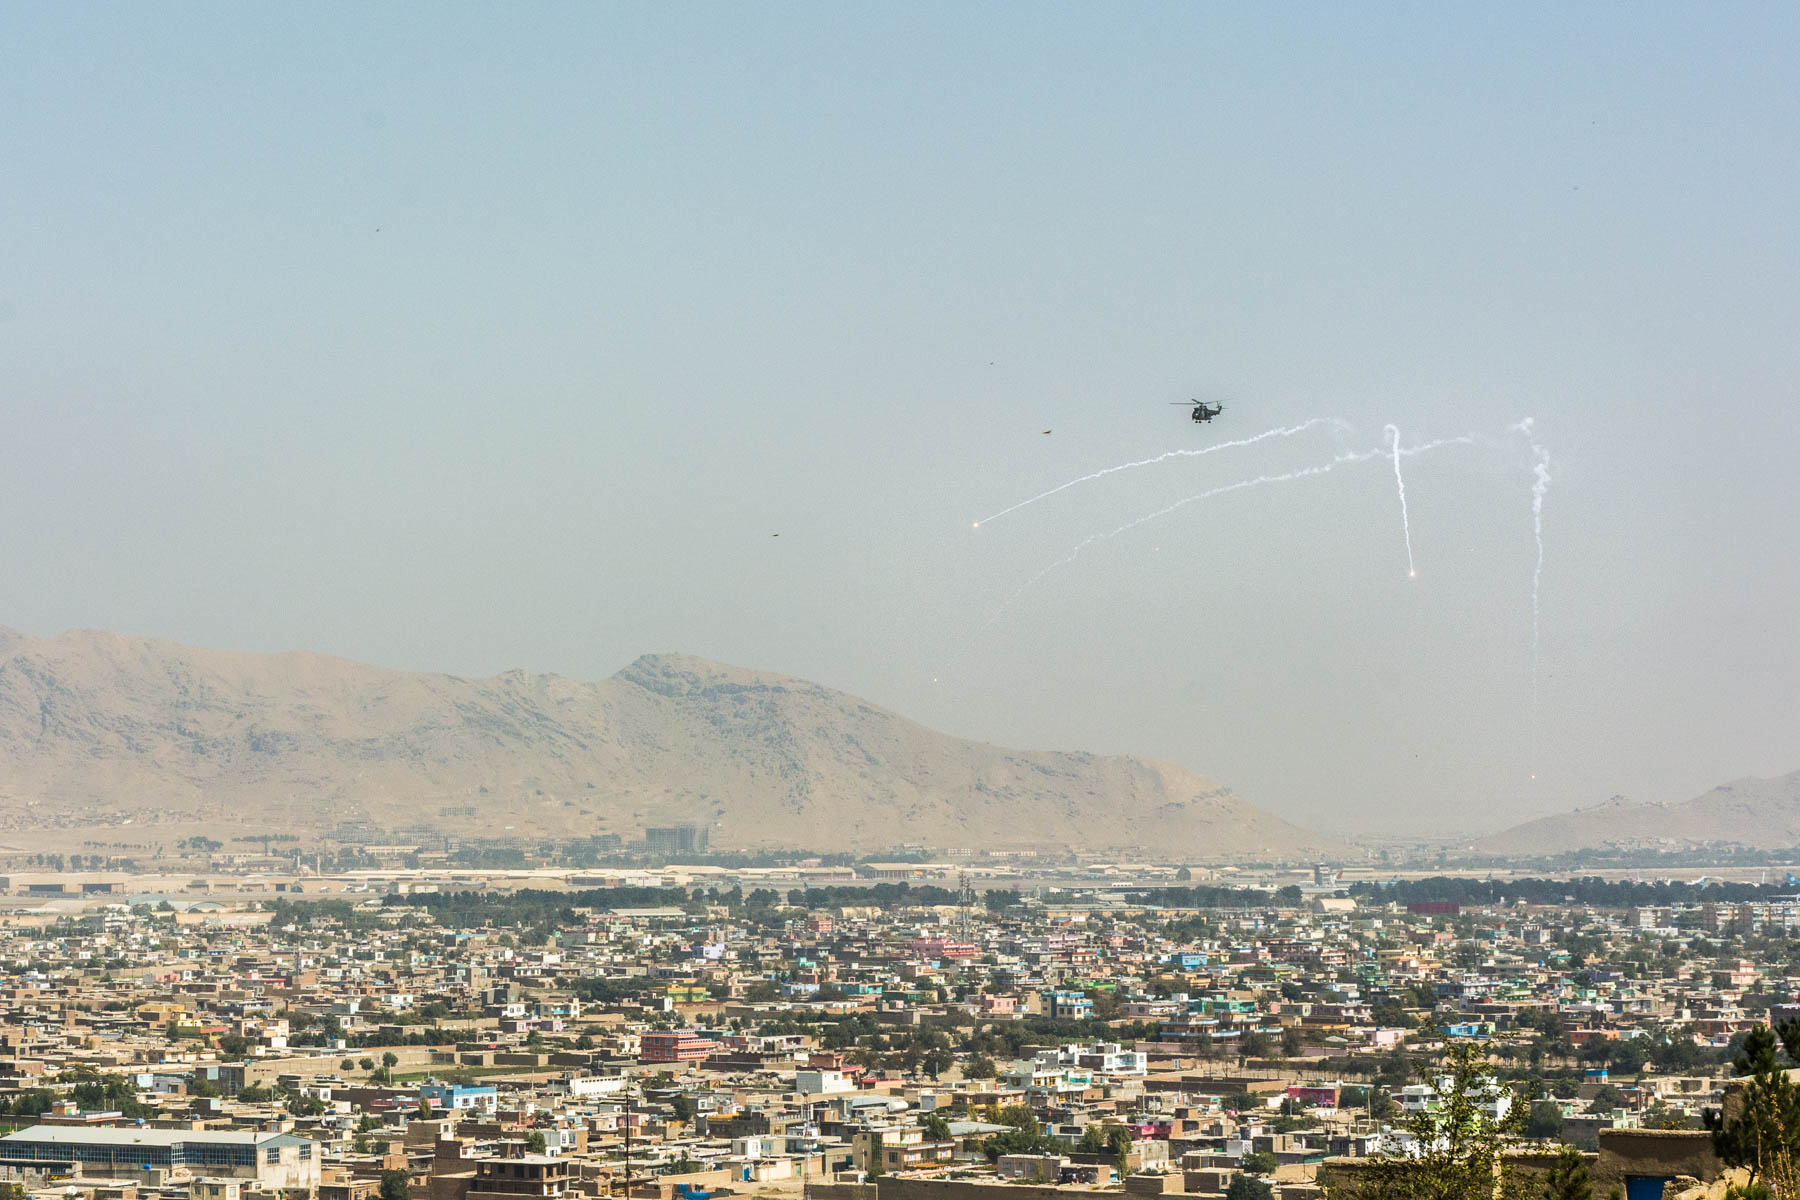 A military helicopter patrolling the skies of Kabul, Afghanistan - Lost With Purpose